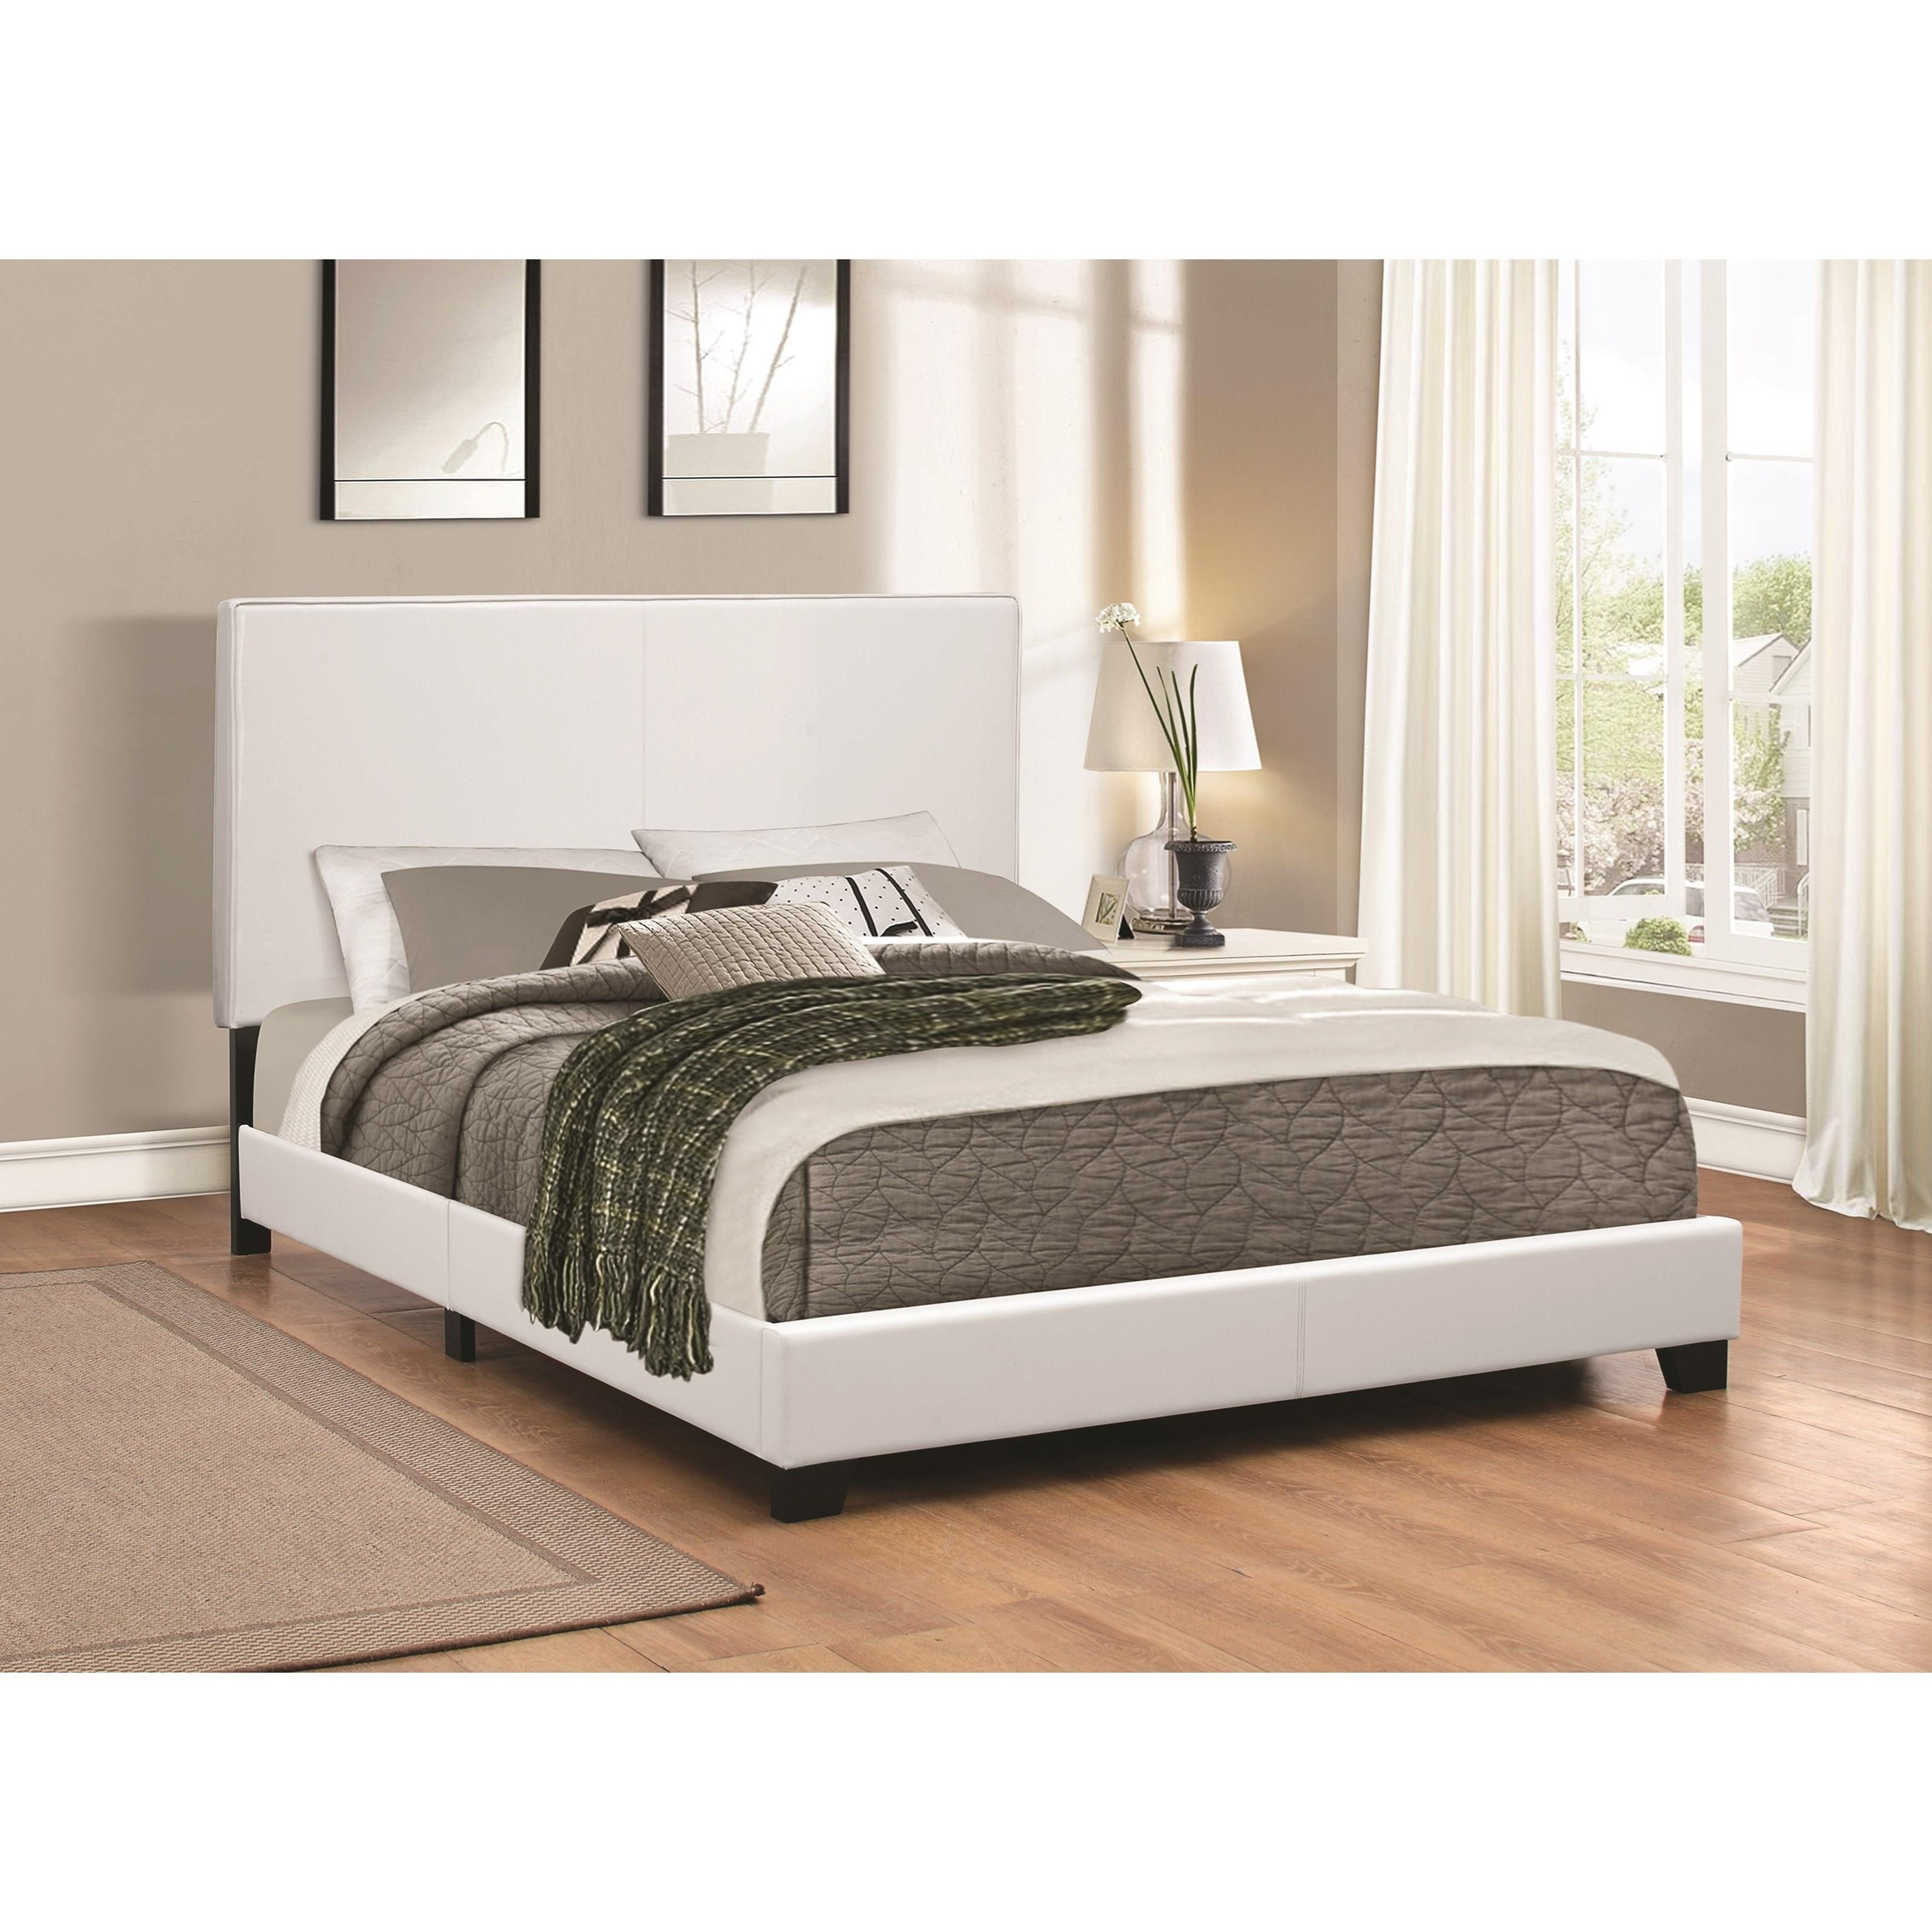 Coaster Upholstered Beds Queen Bed - Item Number: 300559Q